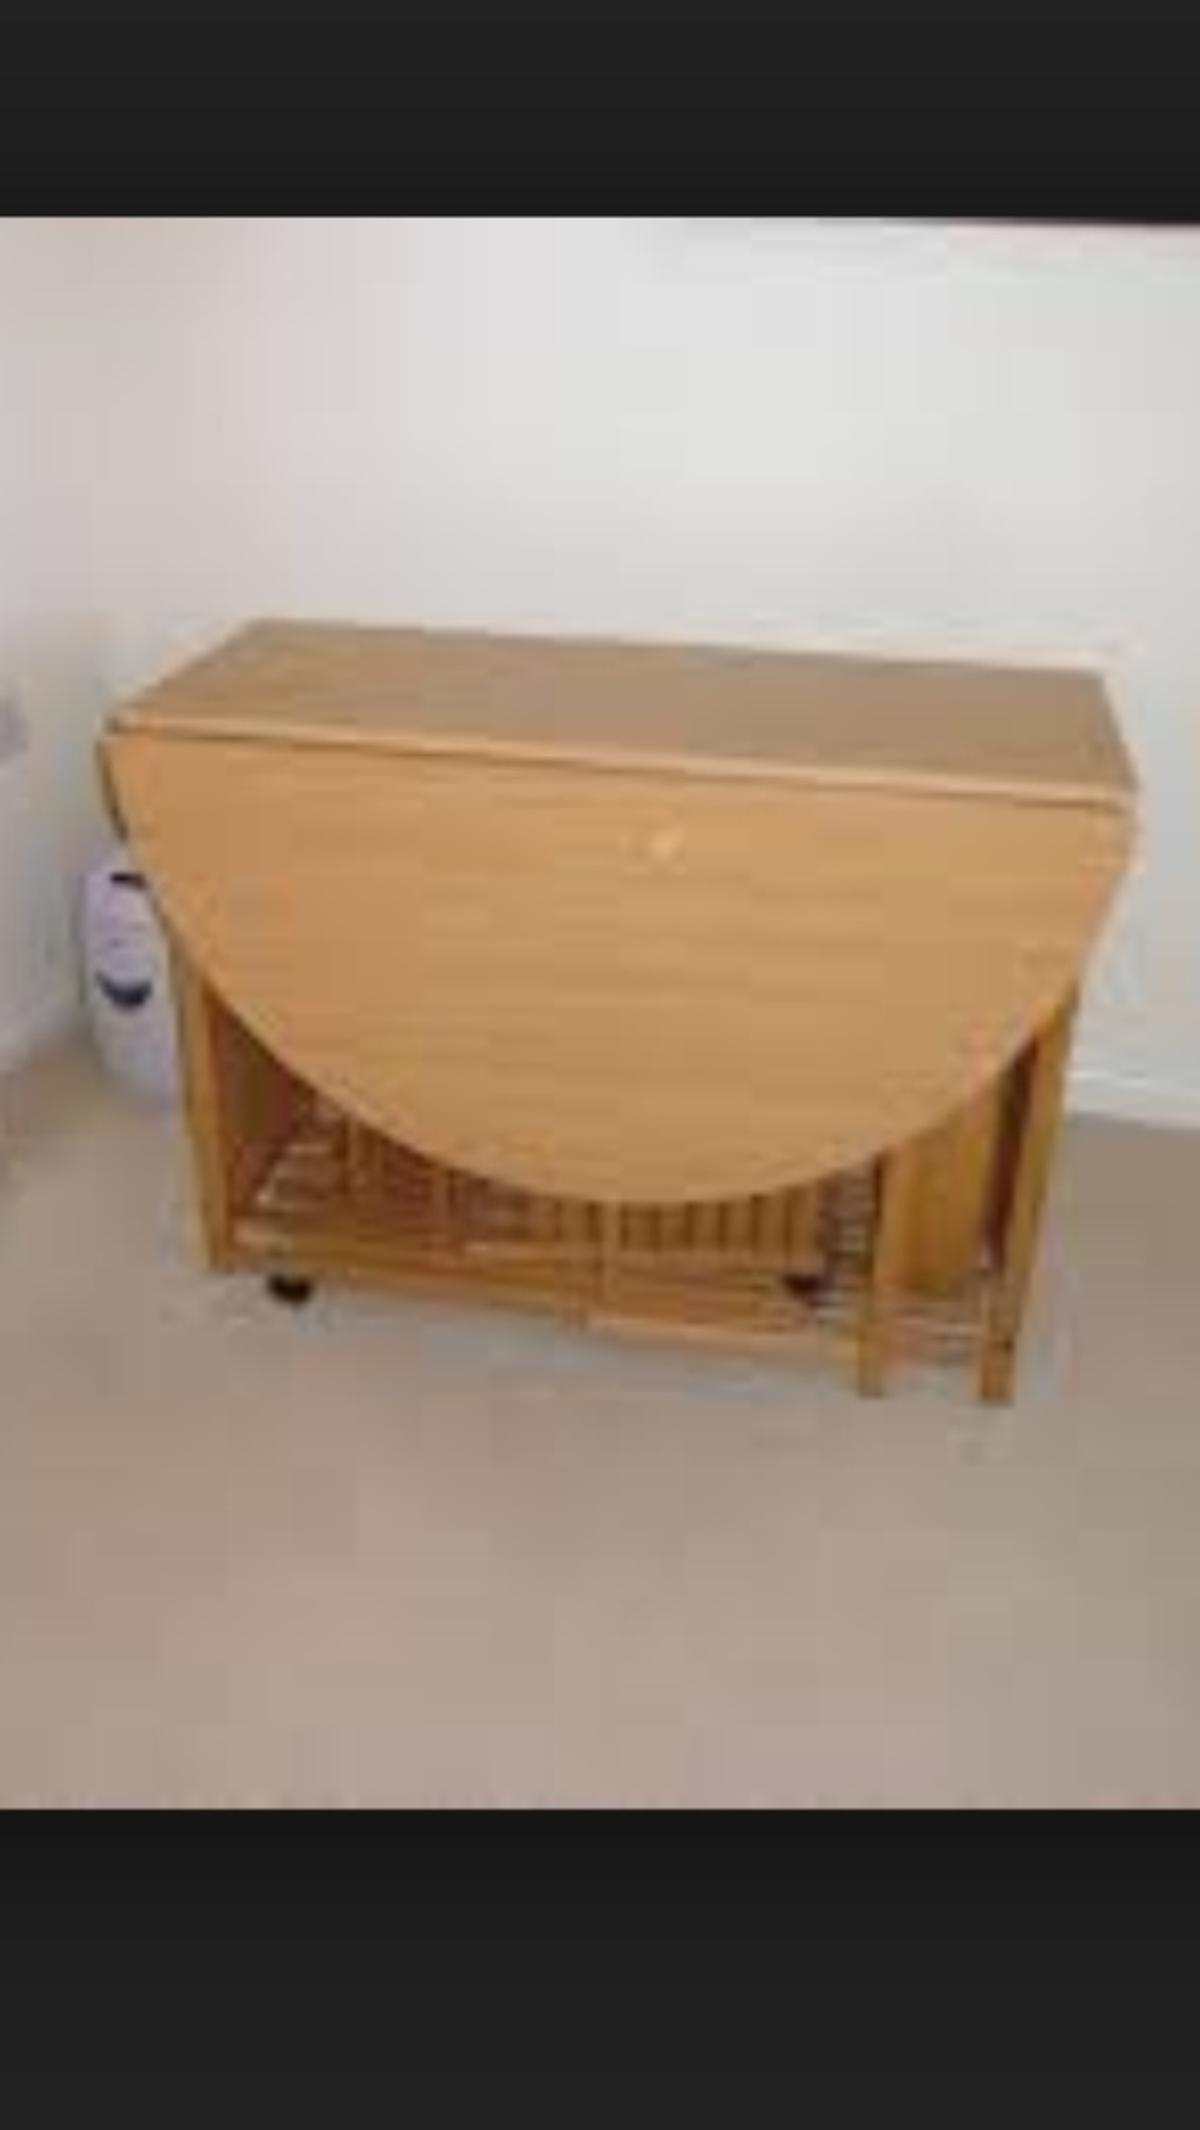 Picture of: Argos Drop Leaf Table With 4 Chairs Woo In N4 London For 75 00 For Sale Shpock